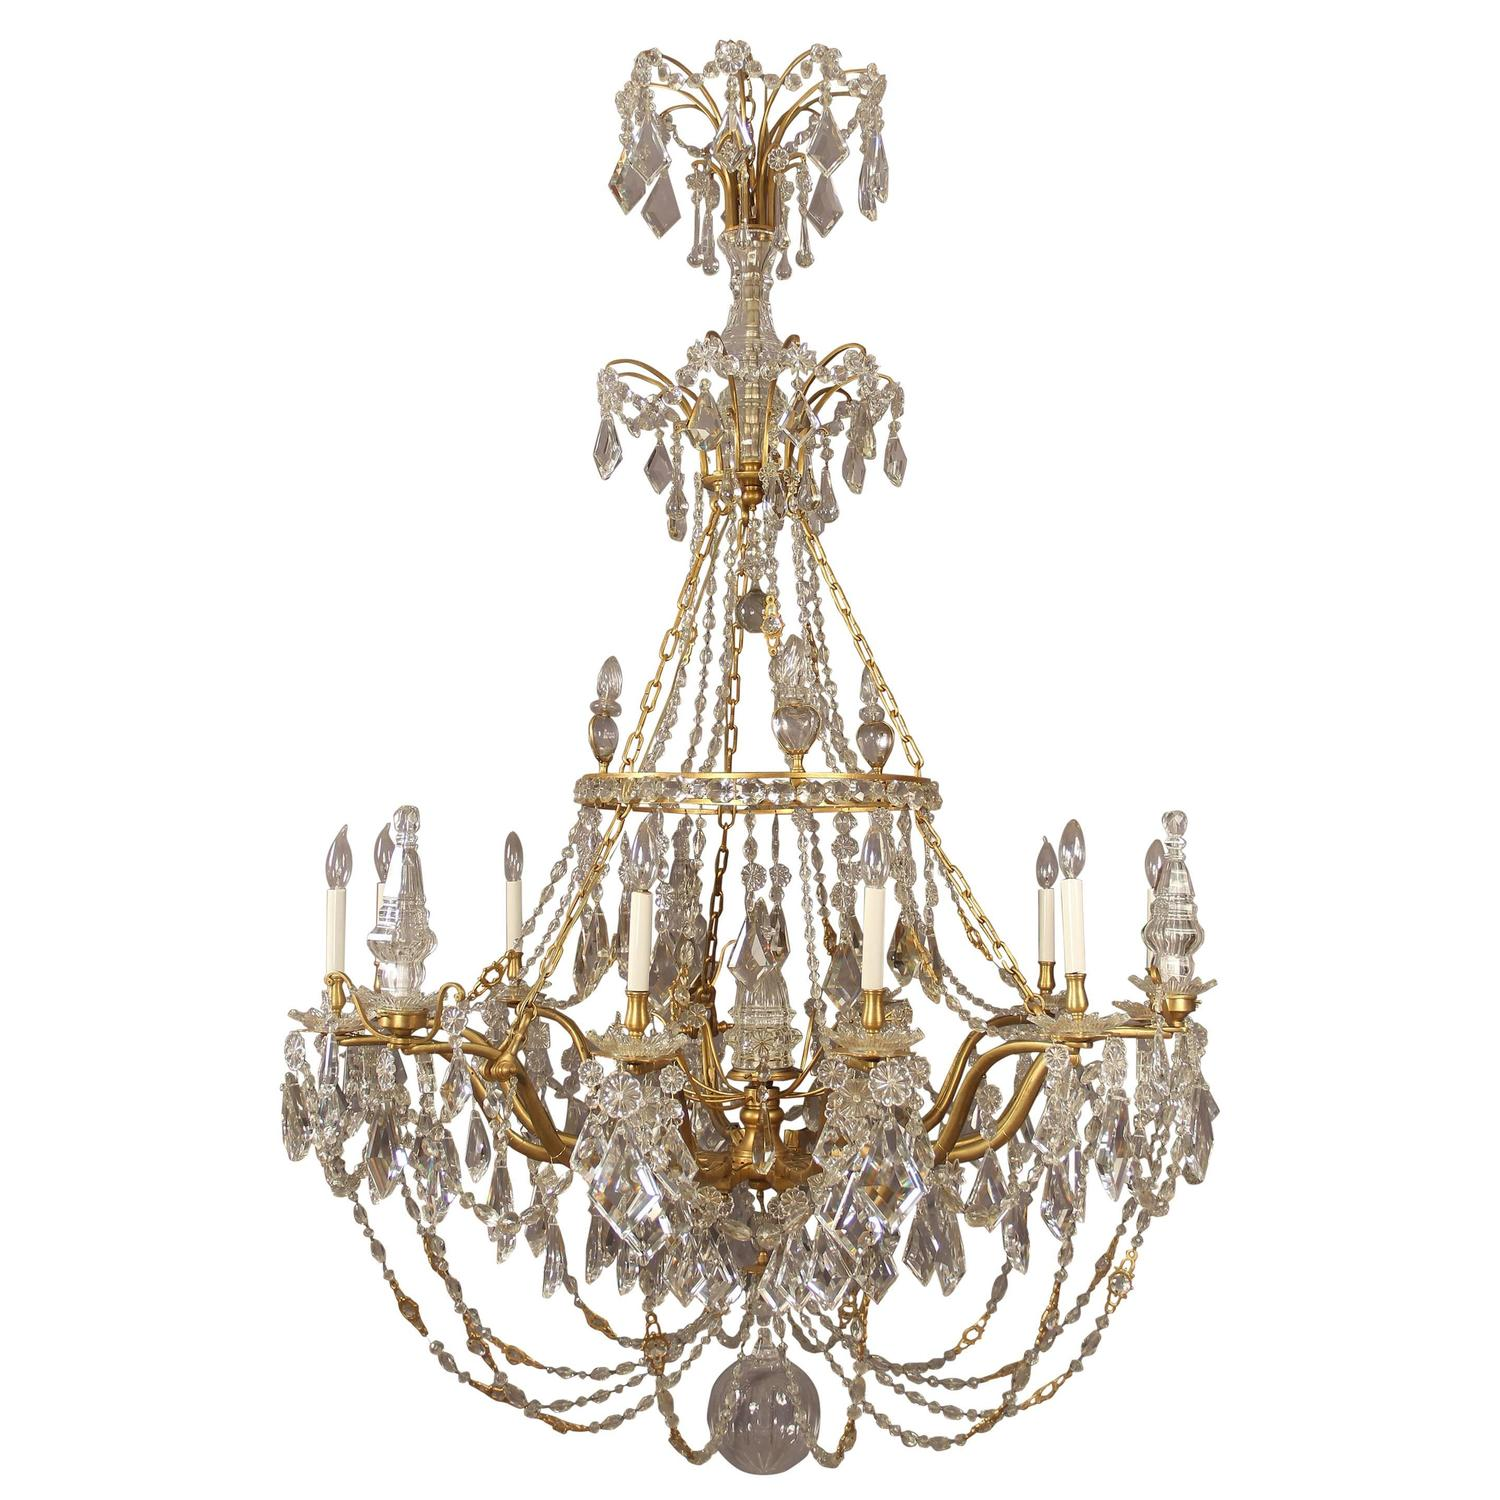 Palatial and unique gilt bronze and crystal chandelier maison jansen france for sale at 1stdibs - Unique crystal chandeliers ...